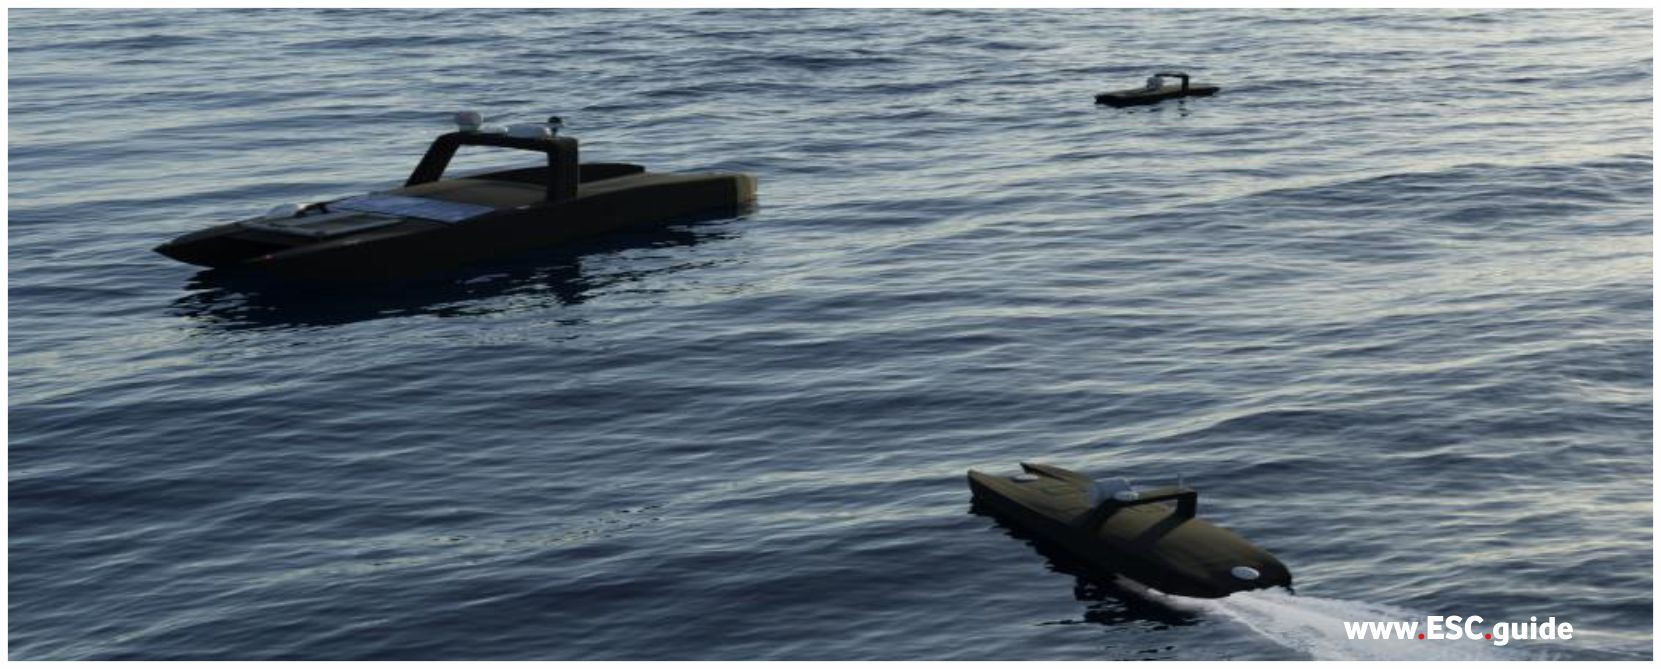 After mission, MANTAS T12s return to MANTAS T38 Scout.